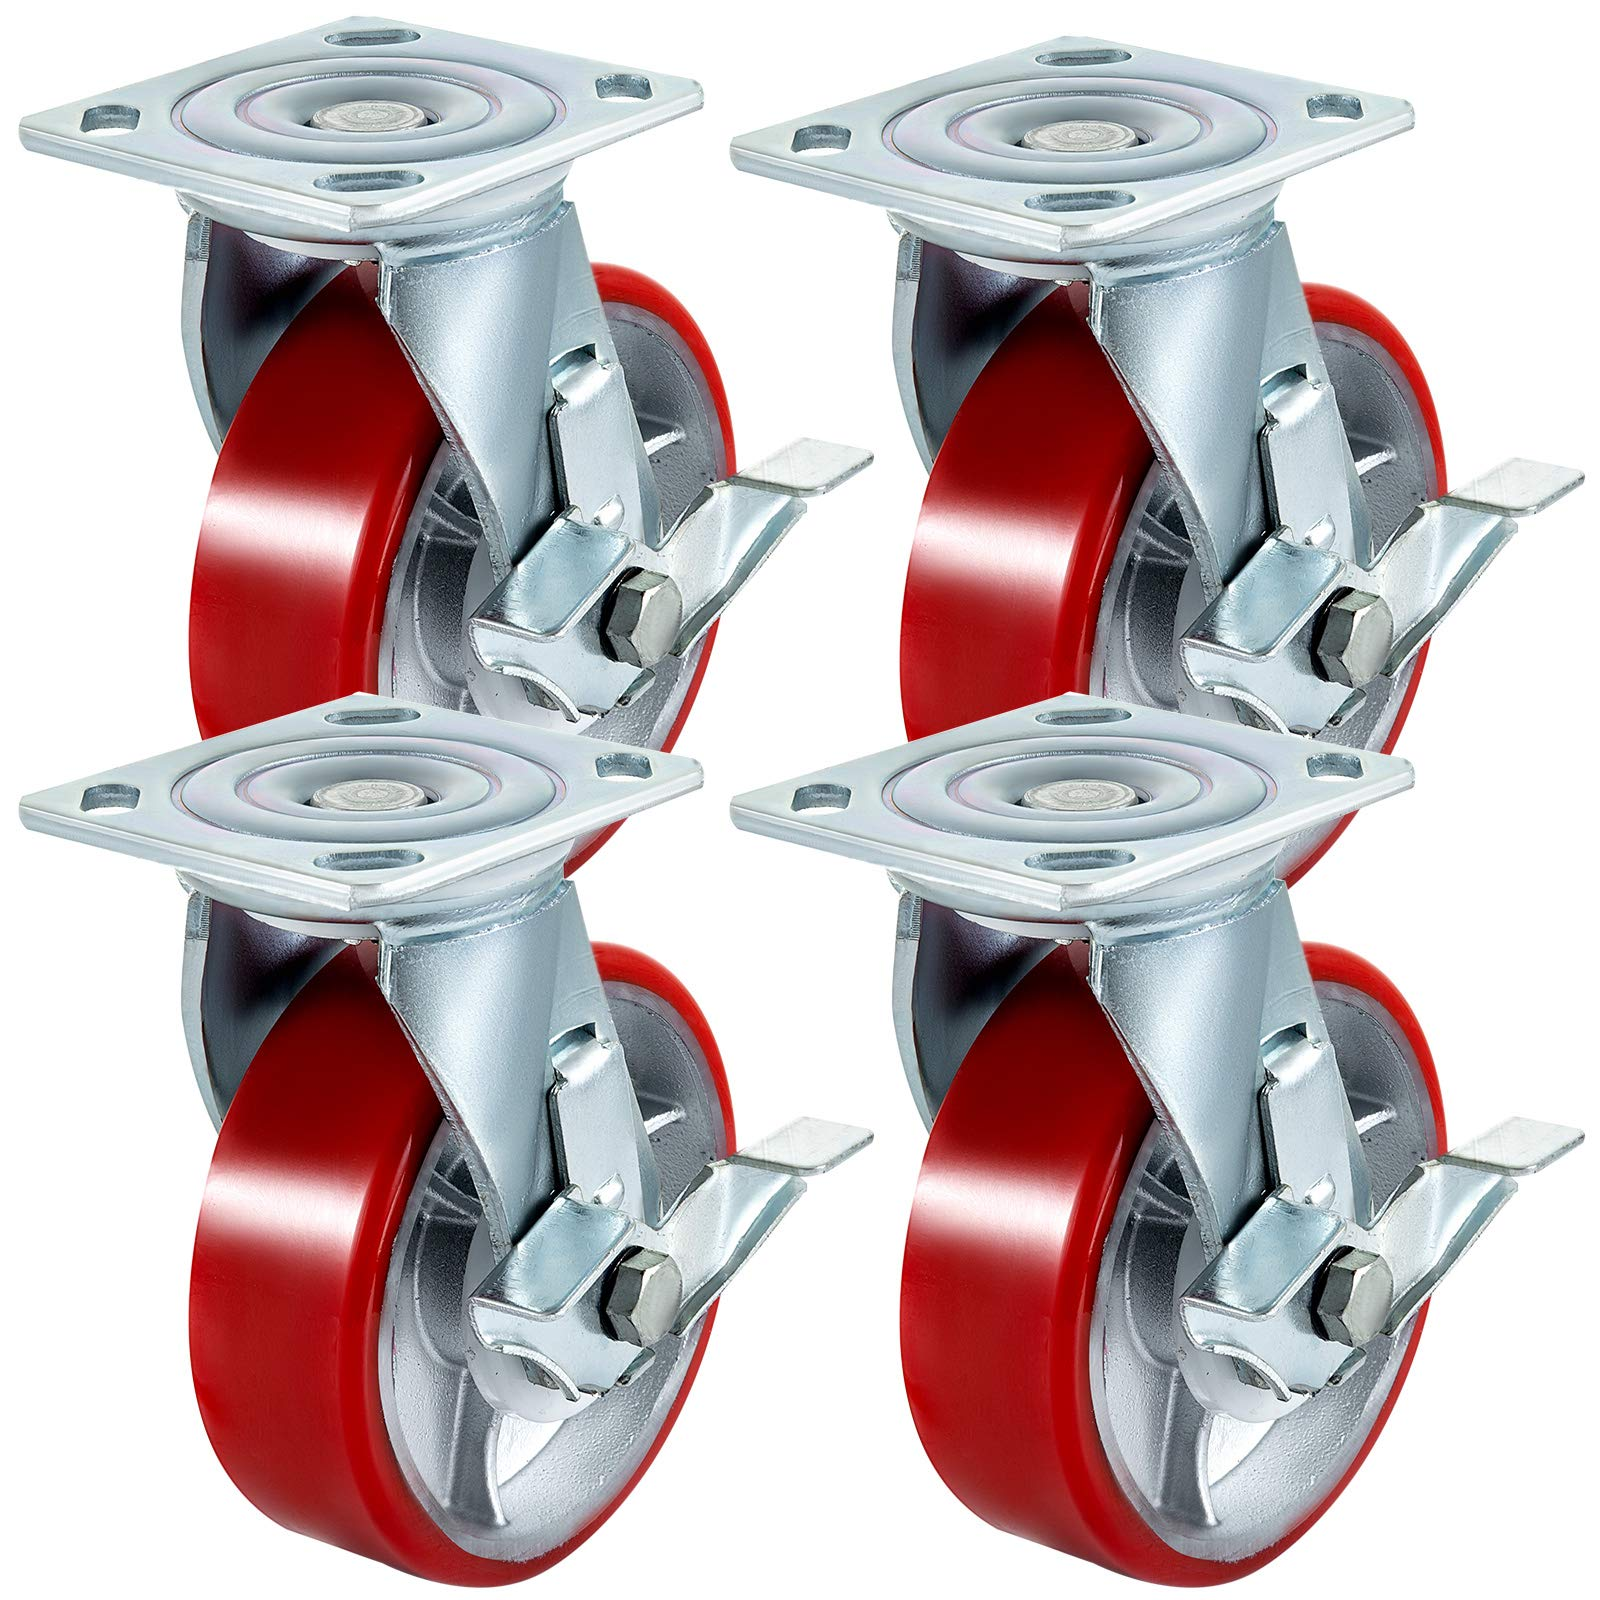 BestEquip 4 Pack Caster Wheels 6'' x 2'' with Side Brake Polyurethane Swivel Caster 360 Degrees Heavy Duty Casters Iron Core Top Plate 1000LBS Capacity Per Wheel for Warehousing and Industrial Equipment